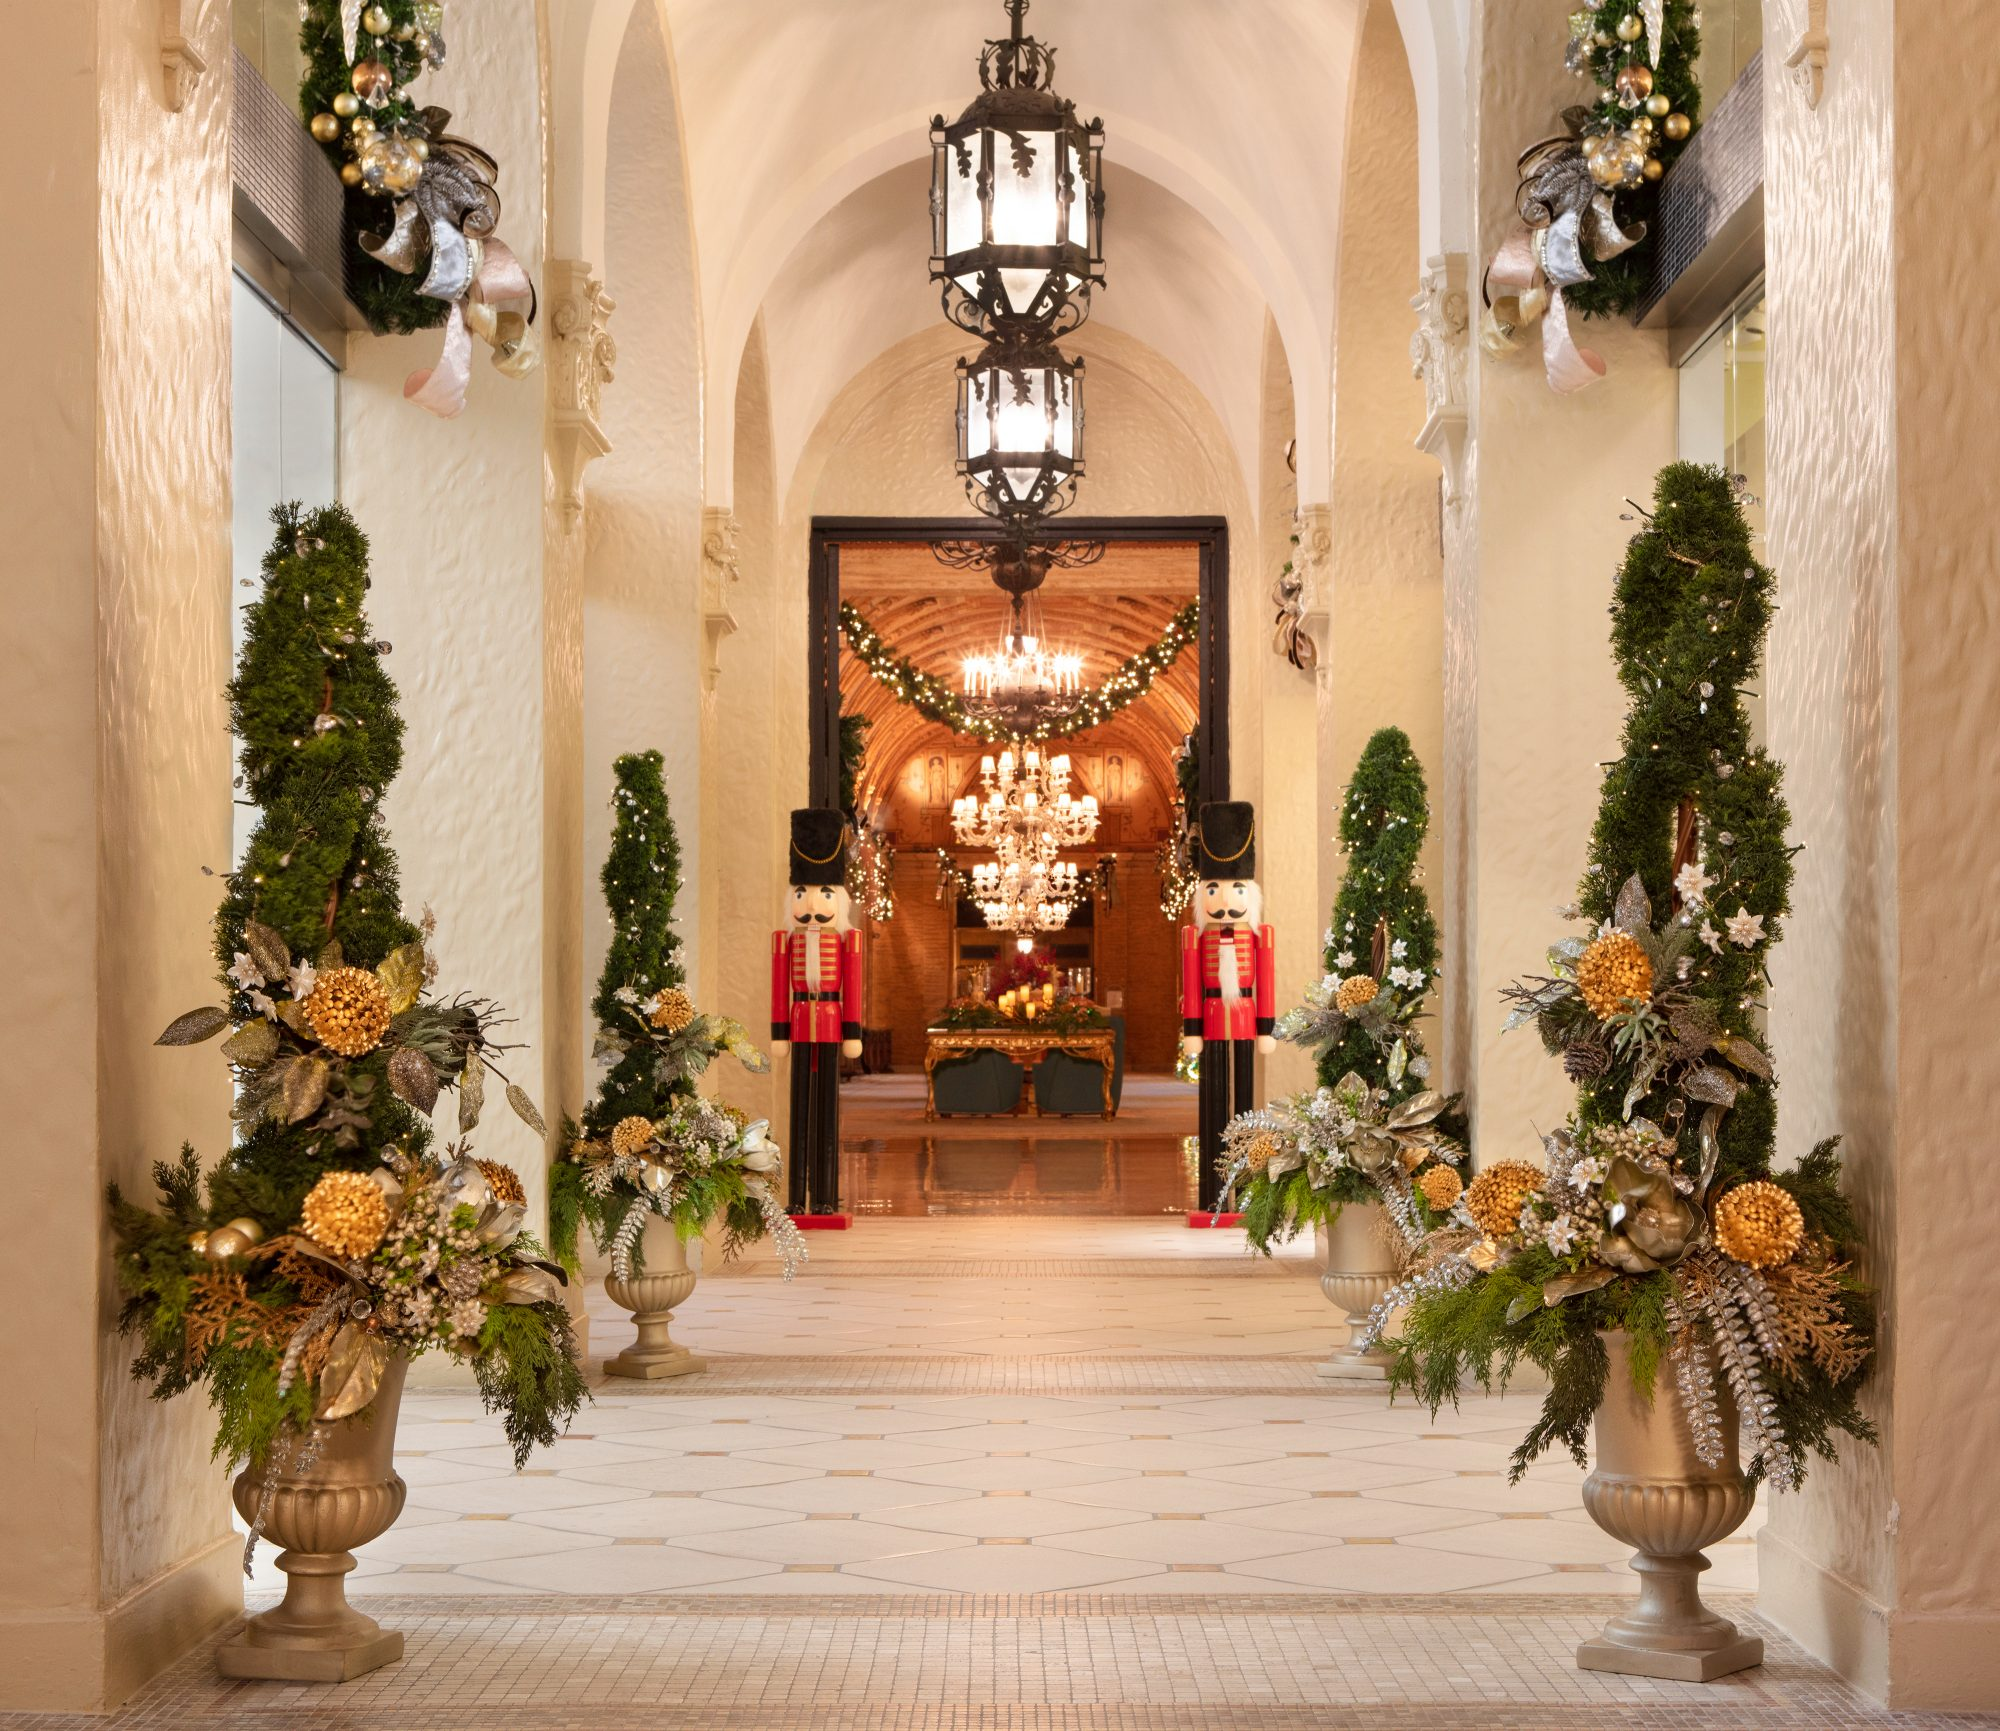 These Four U.S. Hotels Are Known for Their Amazing Holiday Displays